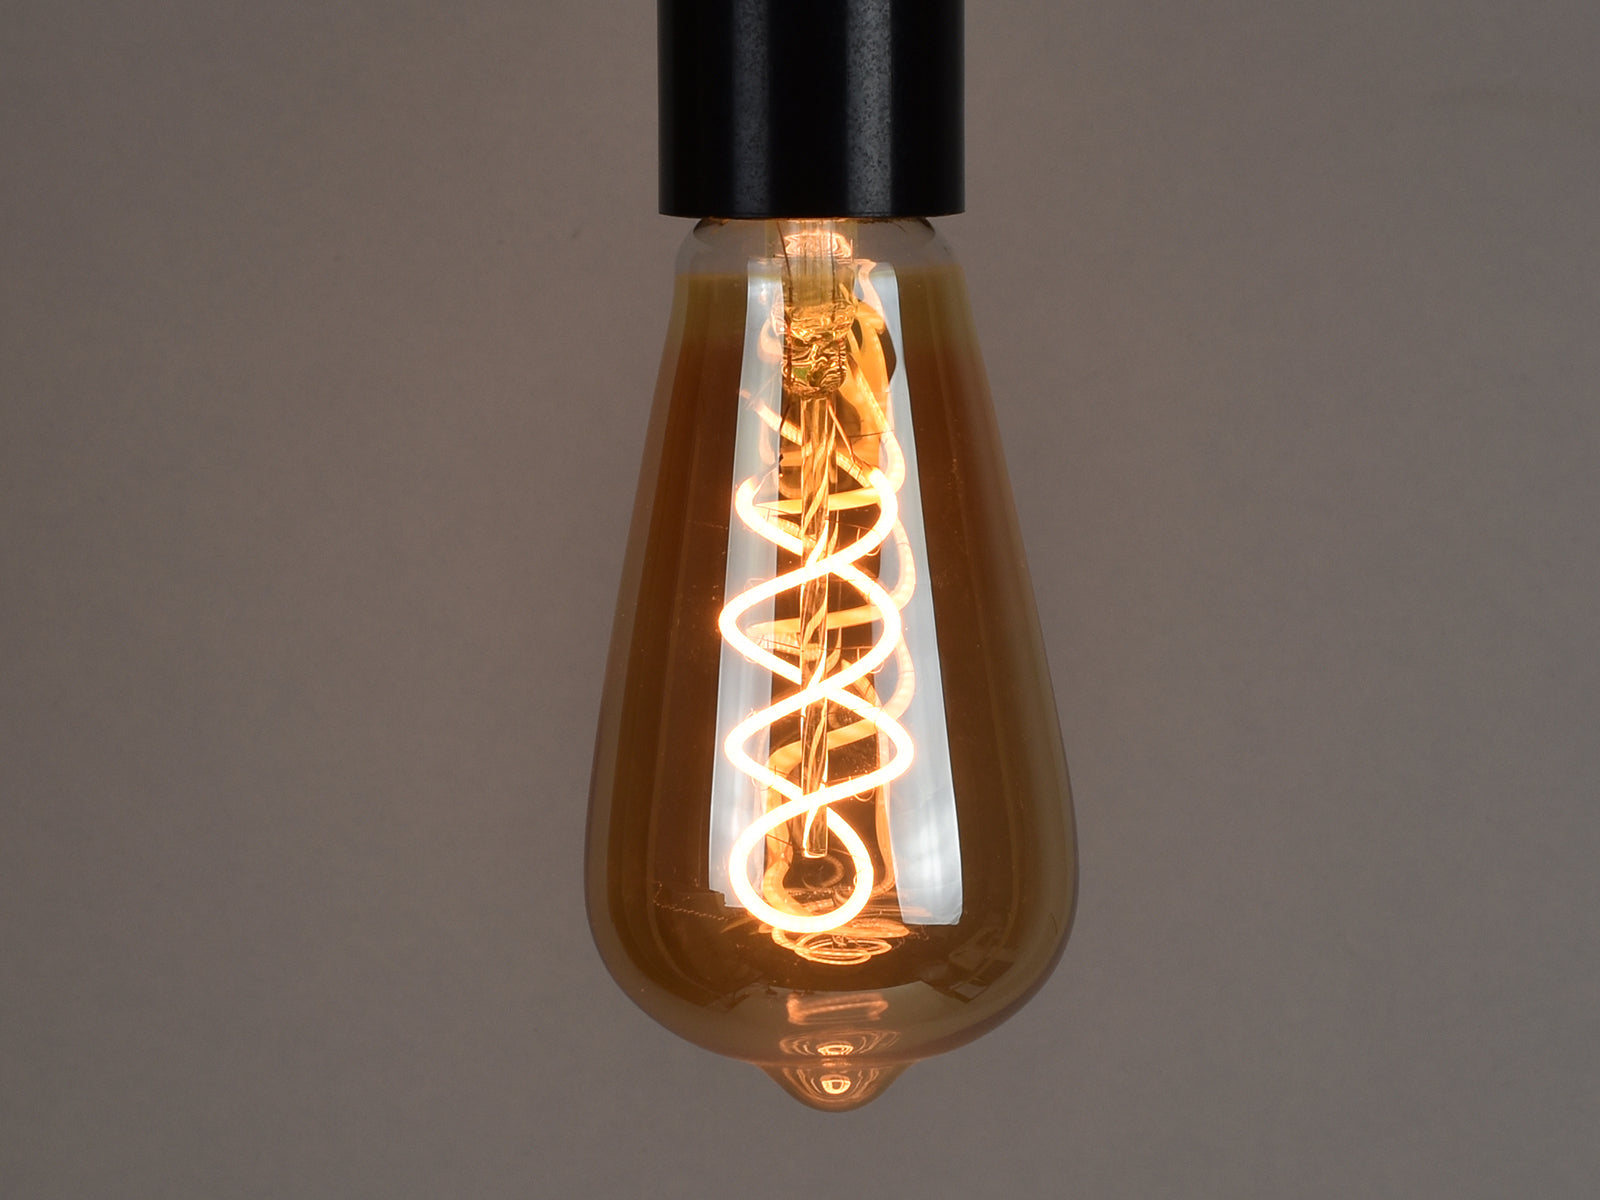 E27 LED Filament Bulb | ST64 | Spiral - Vendimia Lighting Co.